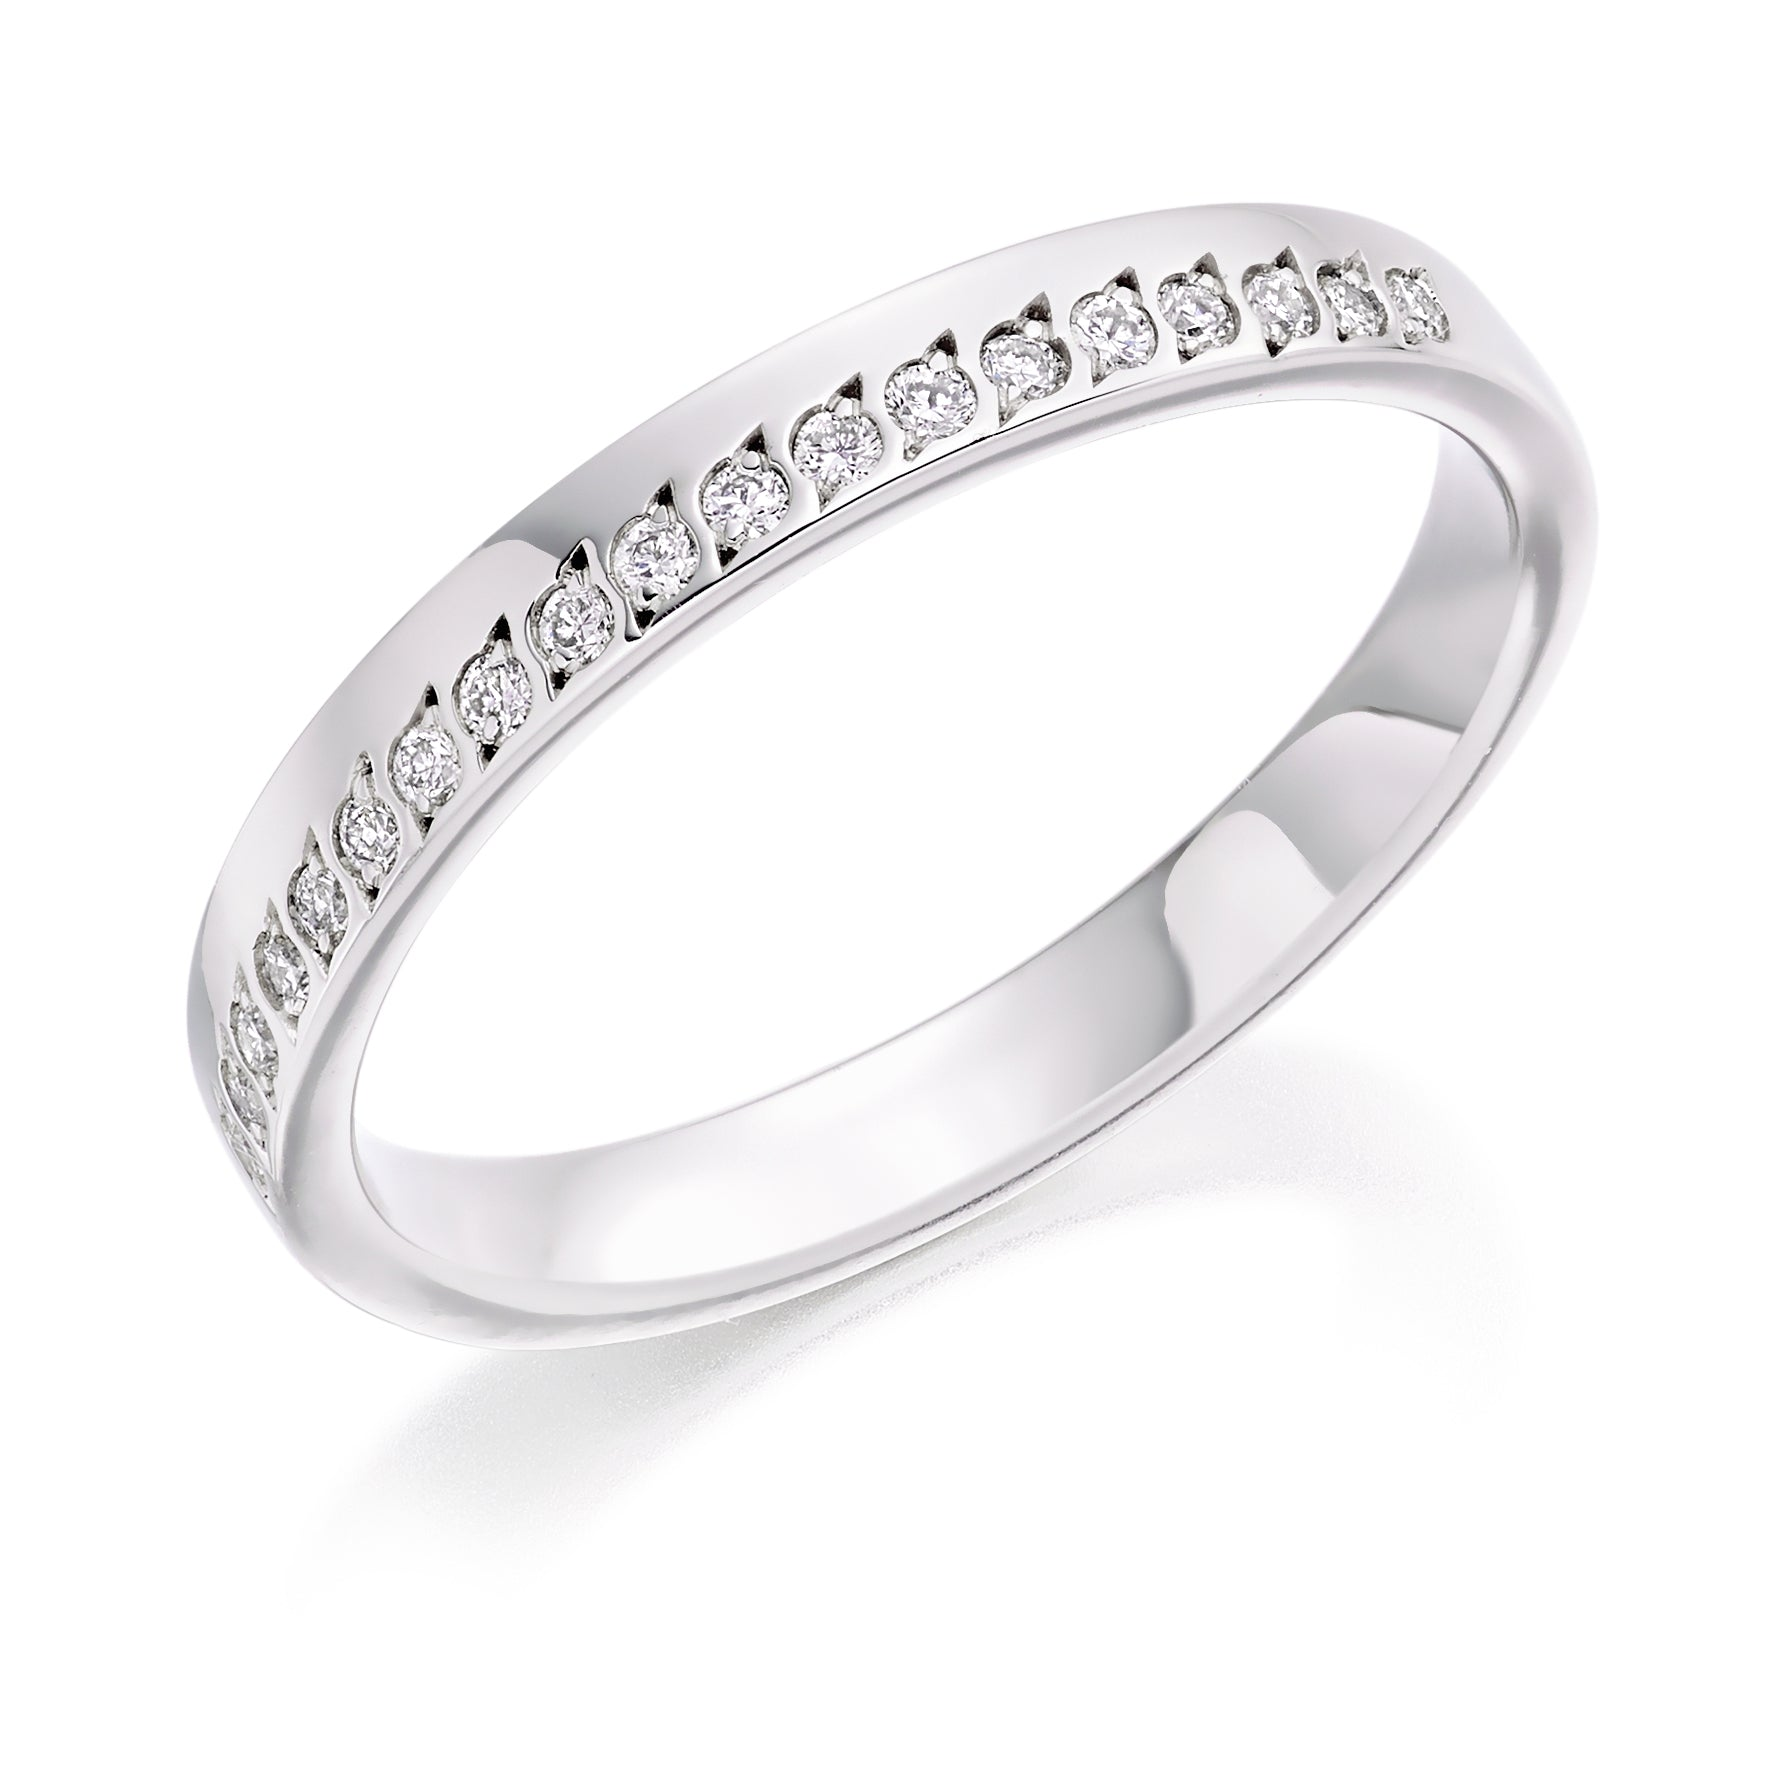 0.15ct Round Brilliant Cut Diamonds Offset Eternity Ring - (Home Try-On)